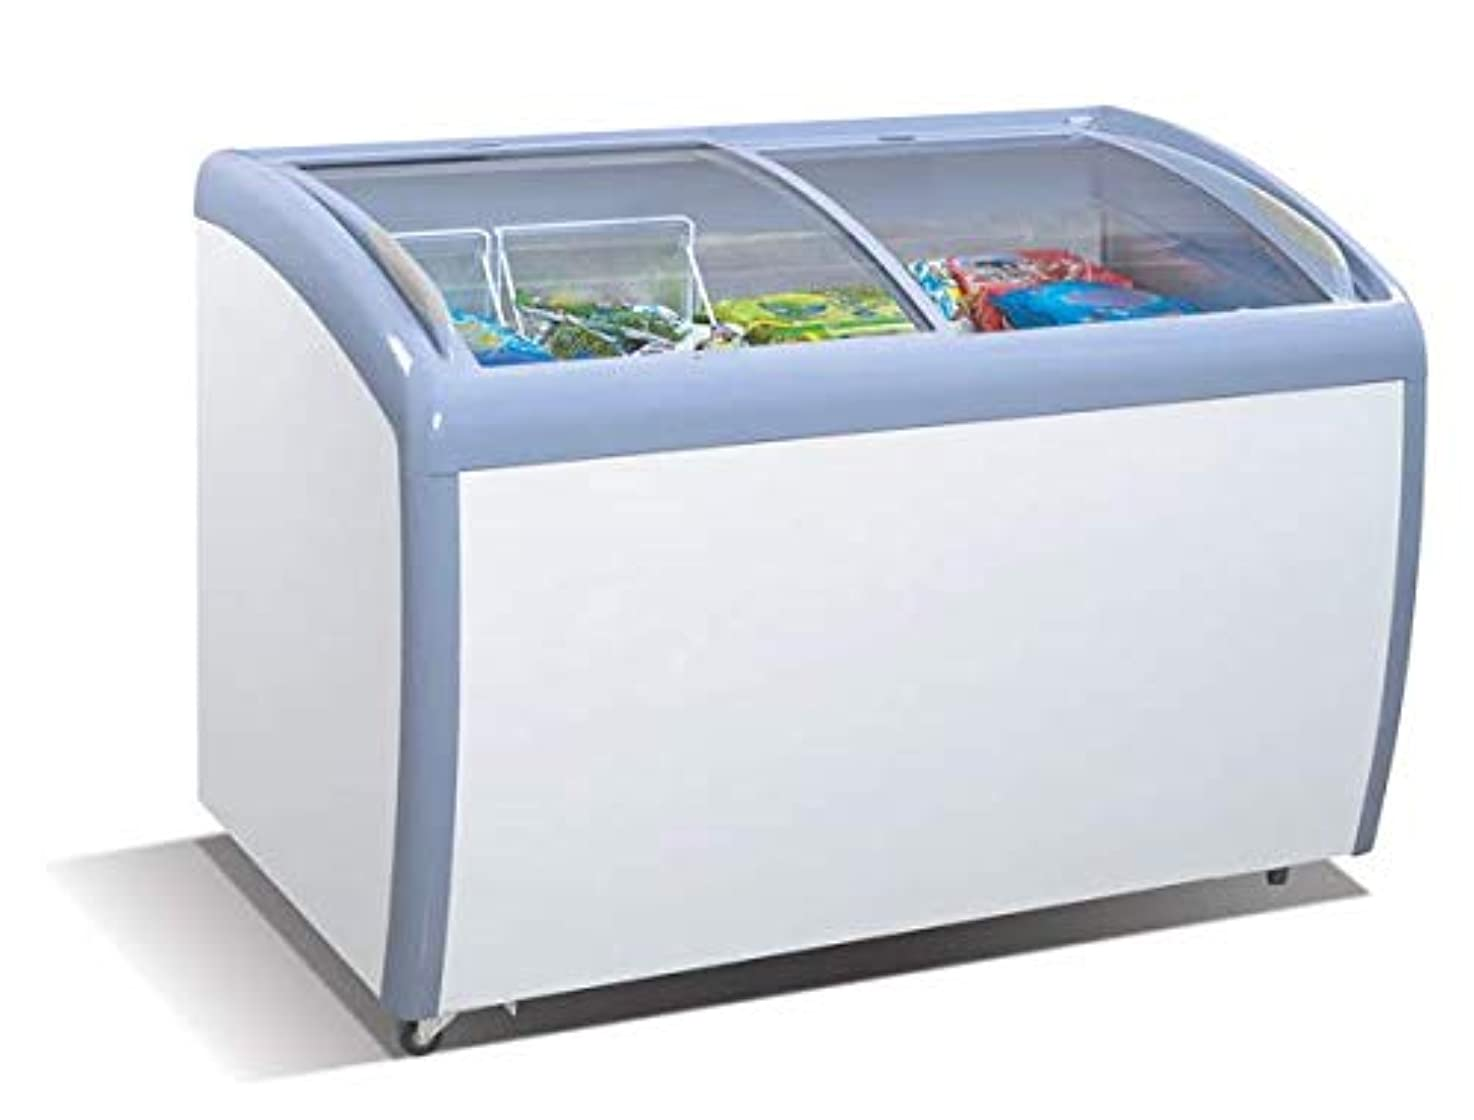 Tiger Chef Commercial Angle Curved Top Chest Freezer Glass Top, Deep Ice Cream Freezer with 2 Wire Baskets, Adjustable Thermostat, Locking Coasters, 9 Cubic Feet, White ahtejqejfqhpw7